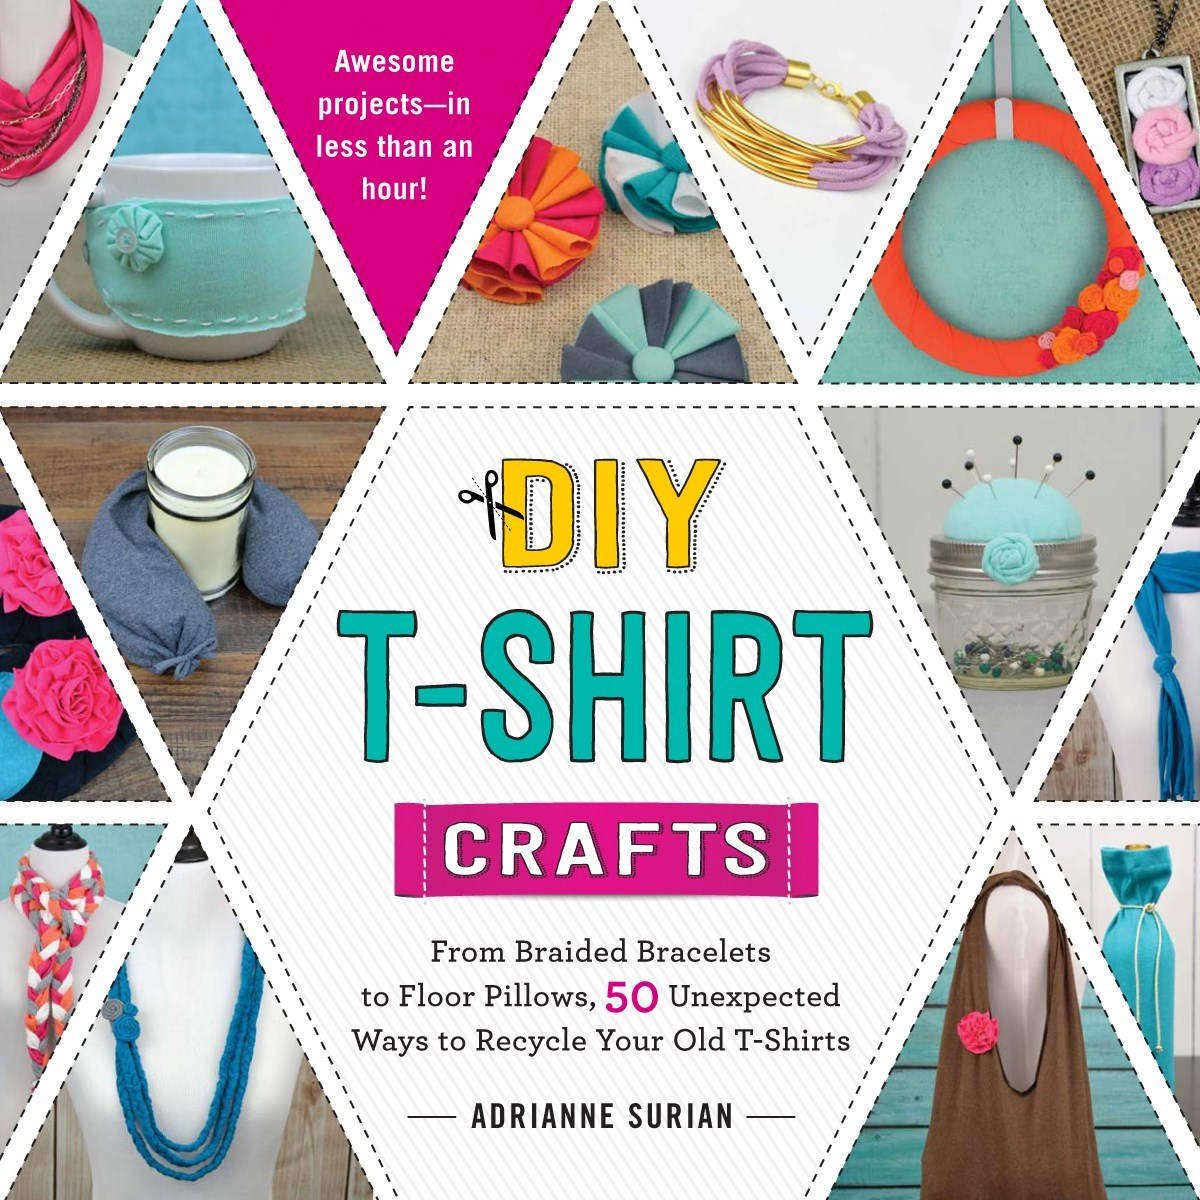 DIY T-Shirt Crafts by Adrianne Surian